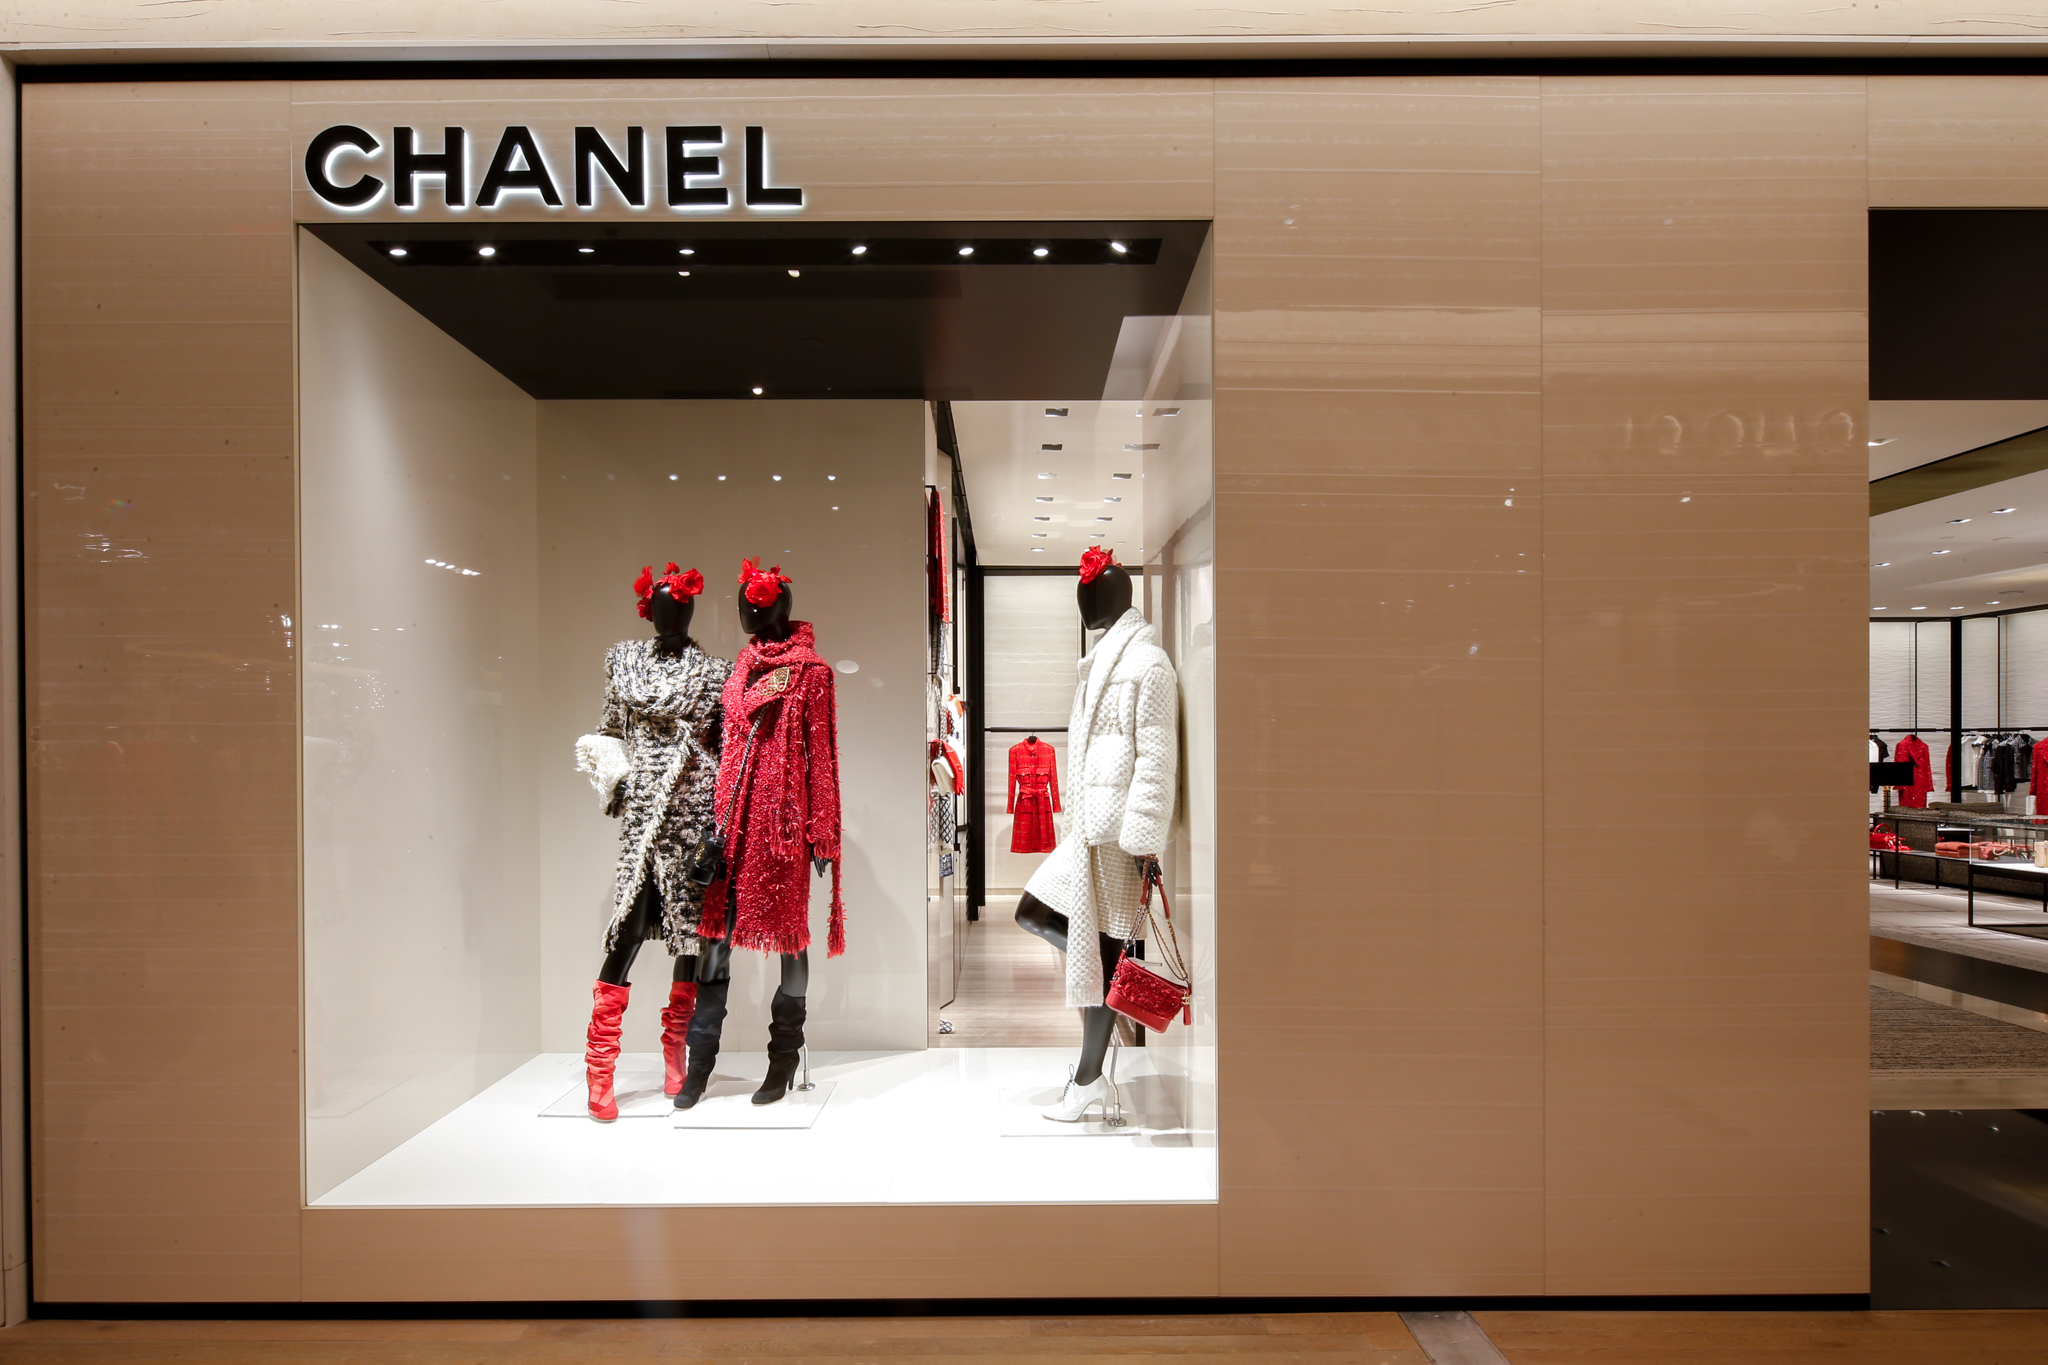 A look inside Chanel's new boutique at the Saks Fifth Avenue flagship store